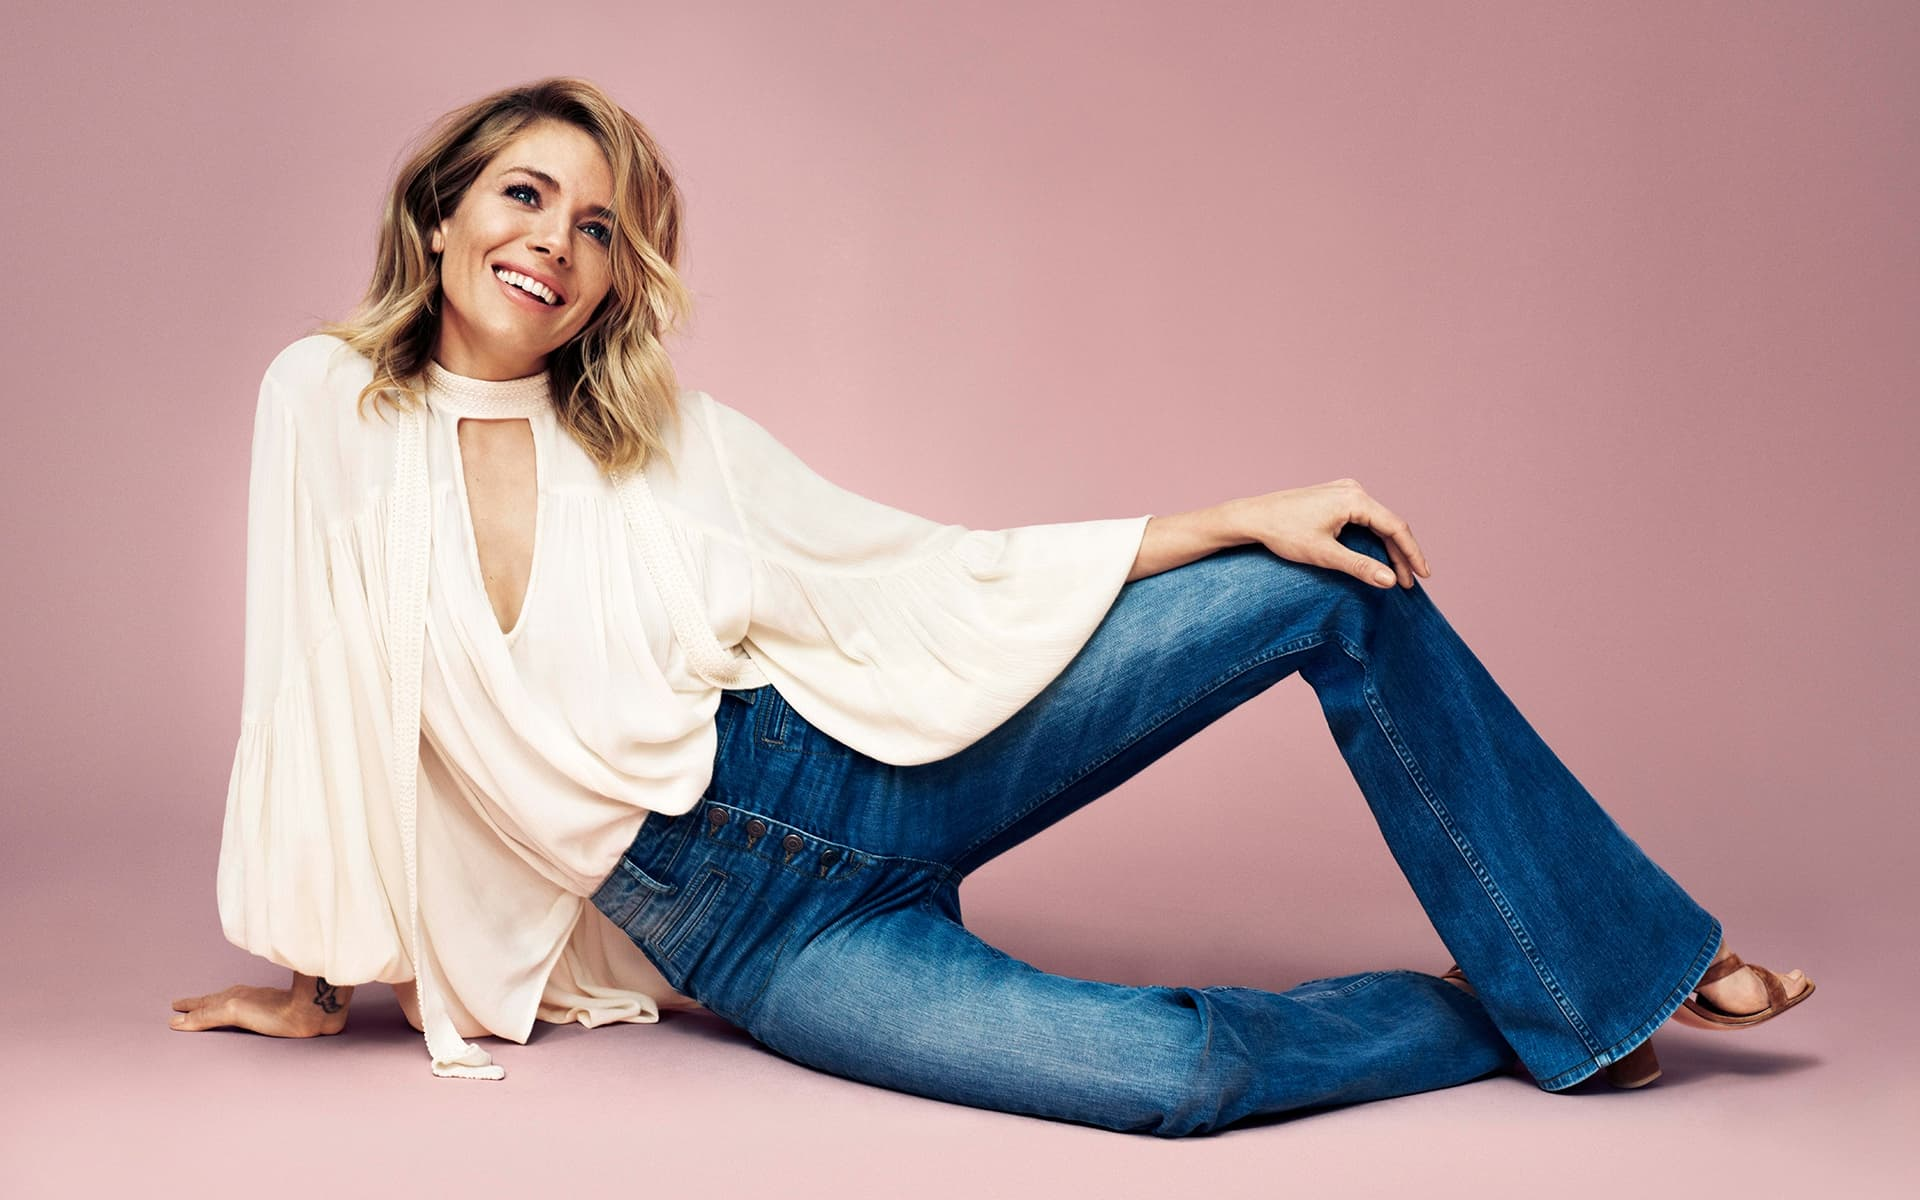 Sienna Miller cool picture 2016